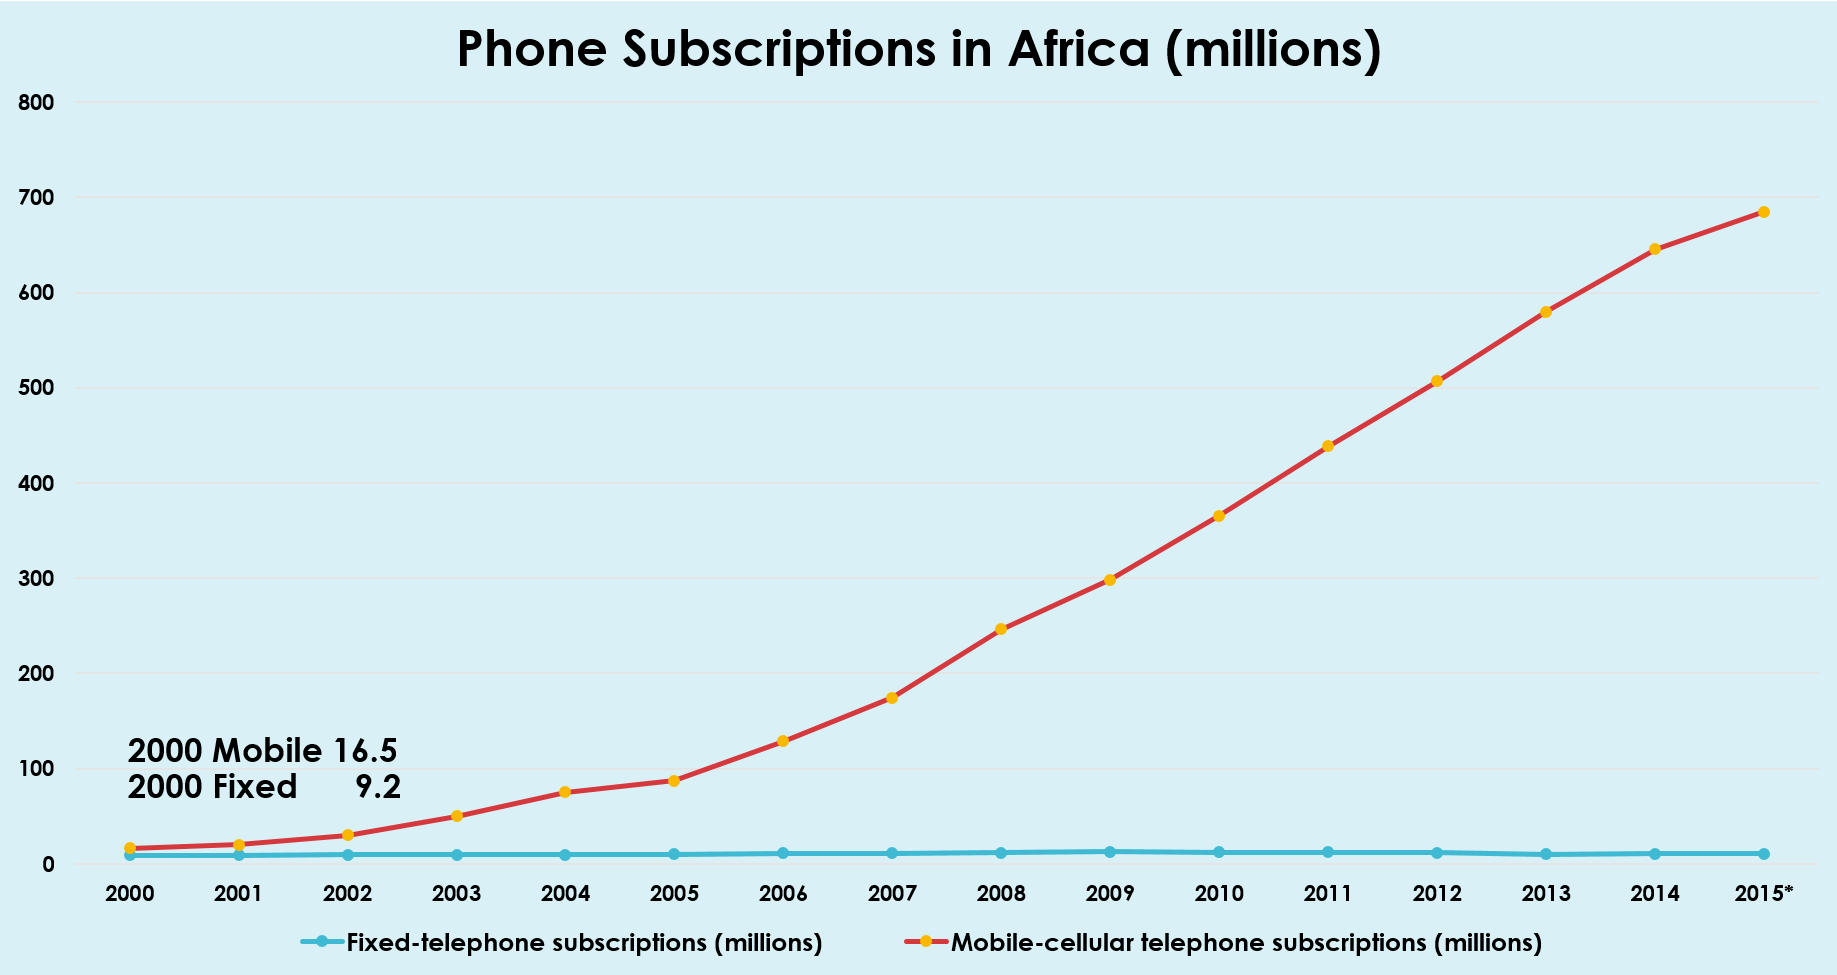 Phone subscriptions in Africa (graph) increases year by year